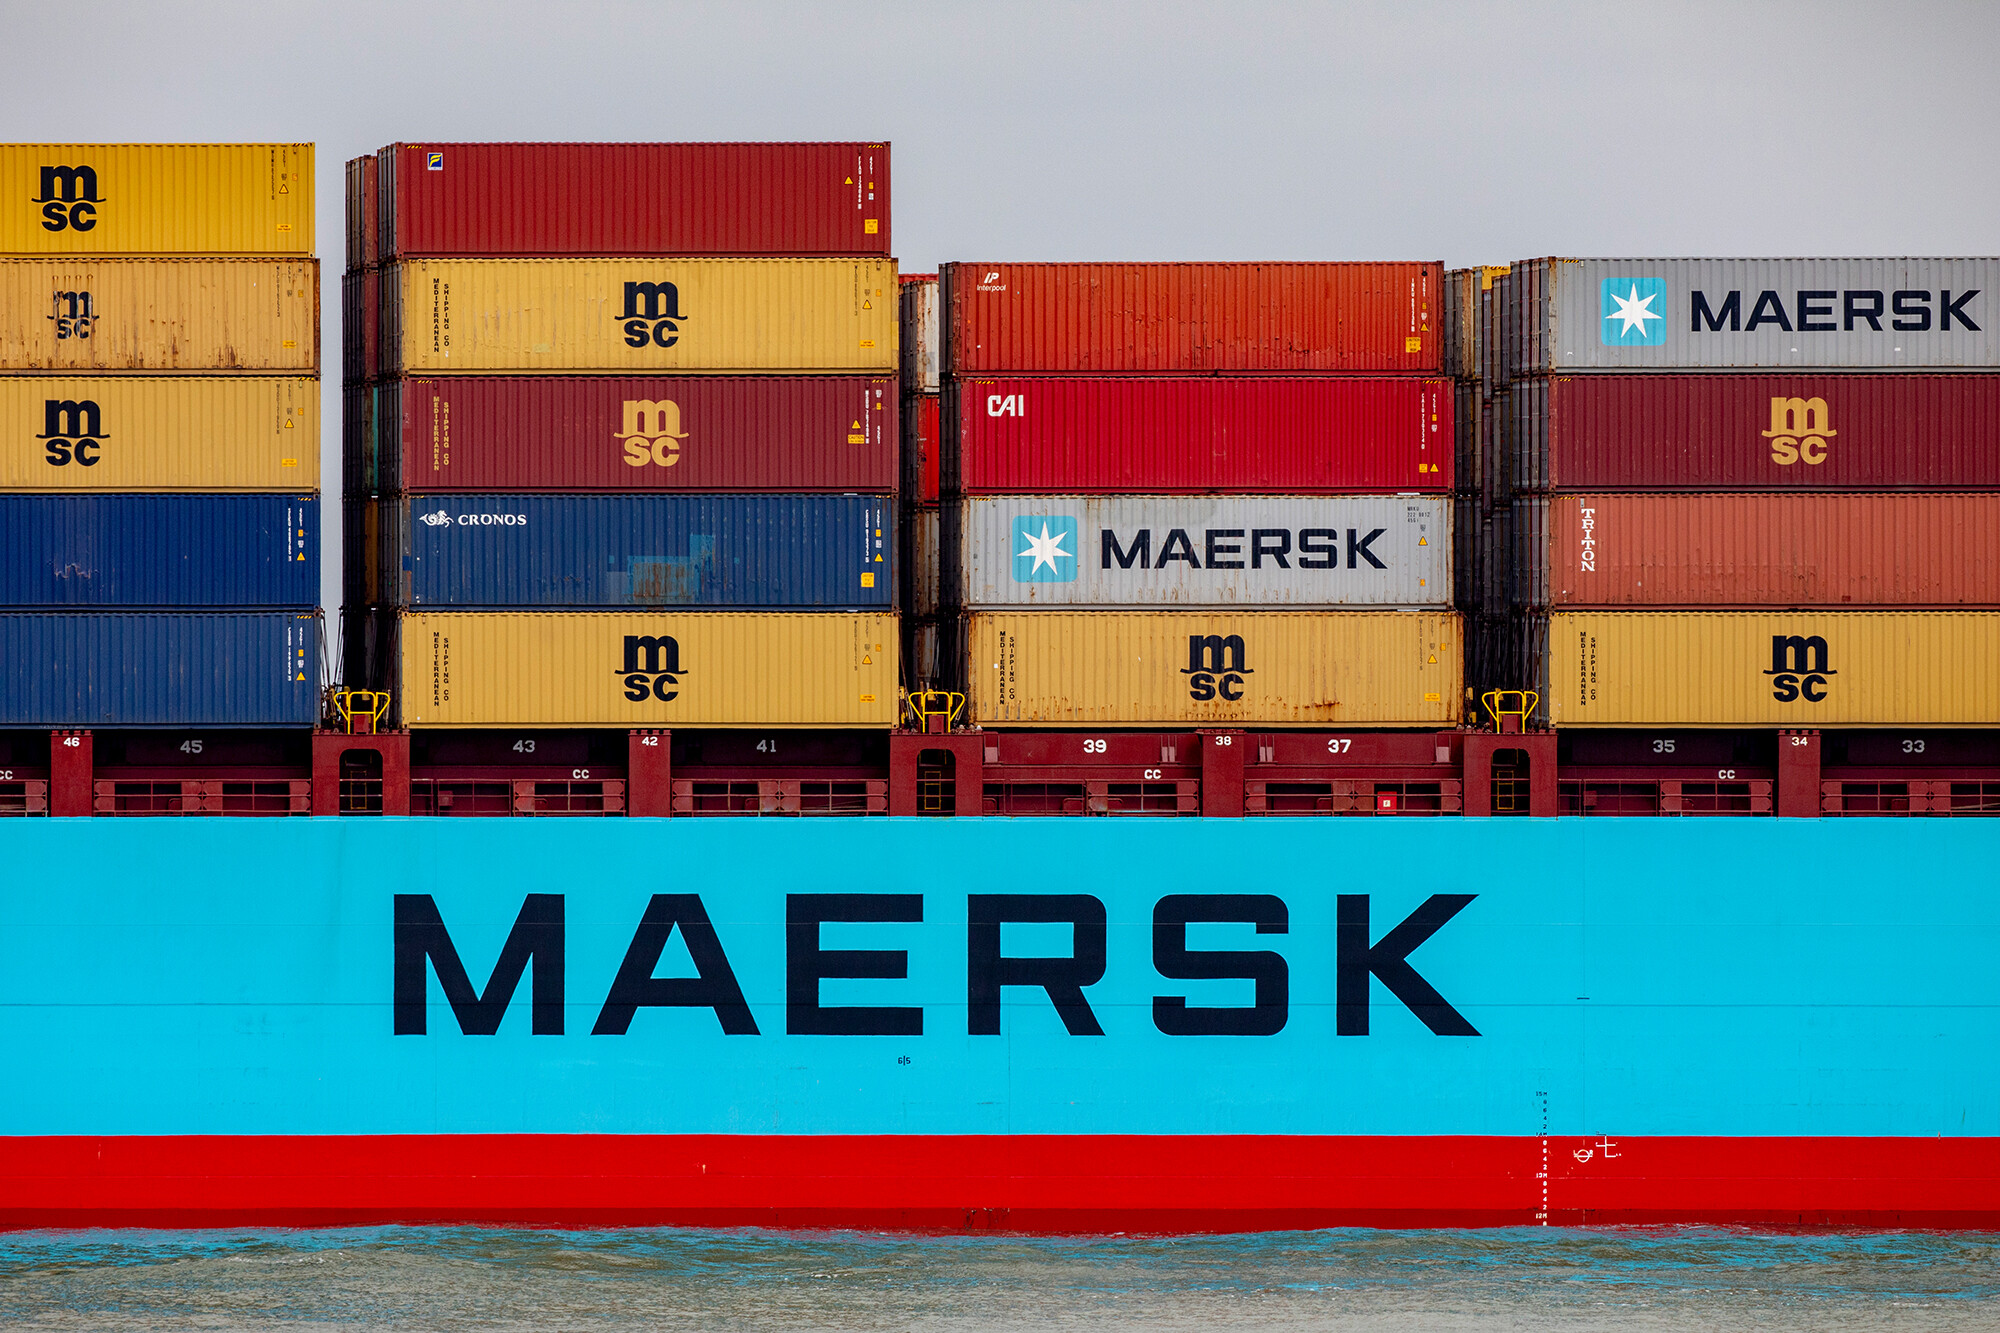 Maersk just ordered 8 carbon neutral ships. Now it needs green fuel